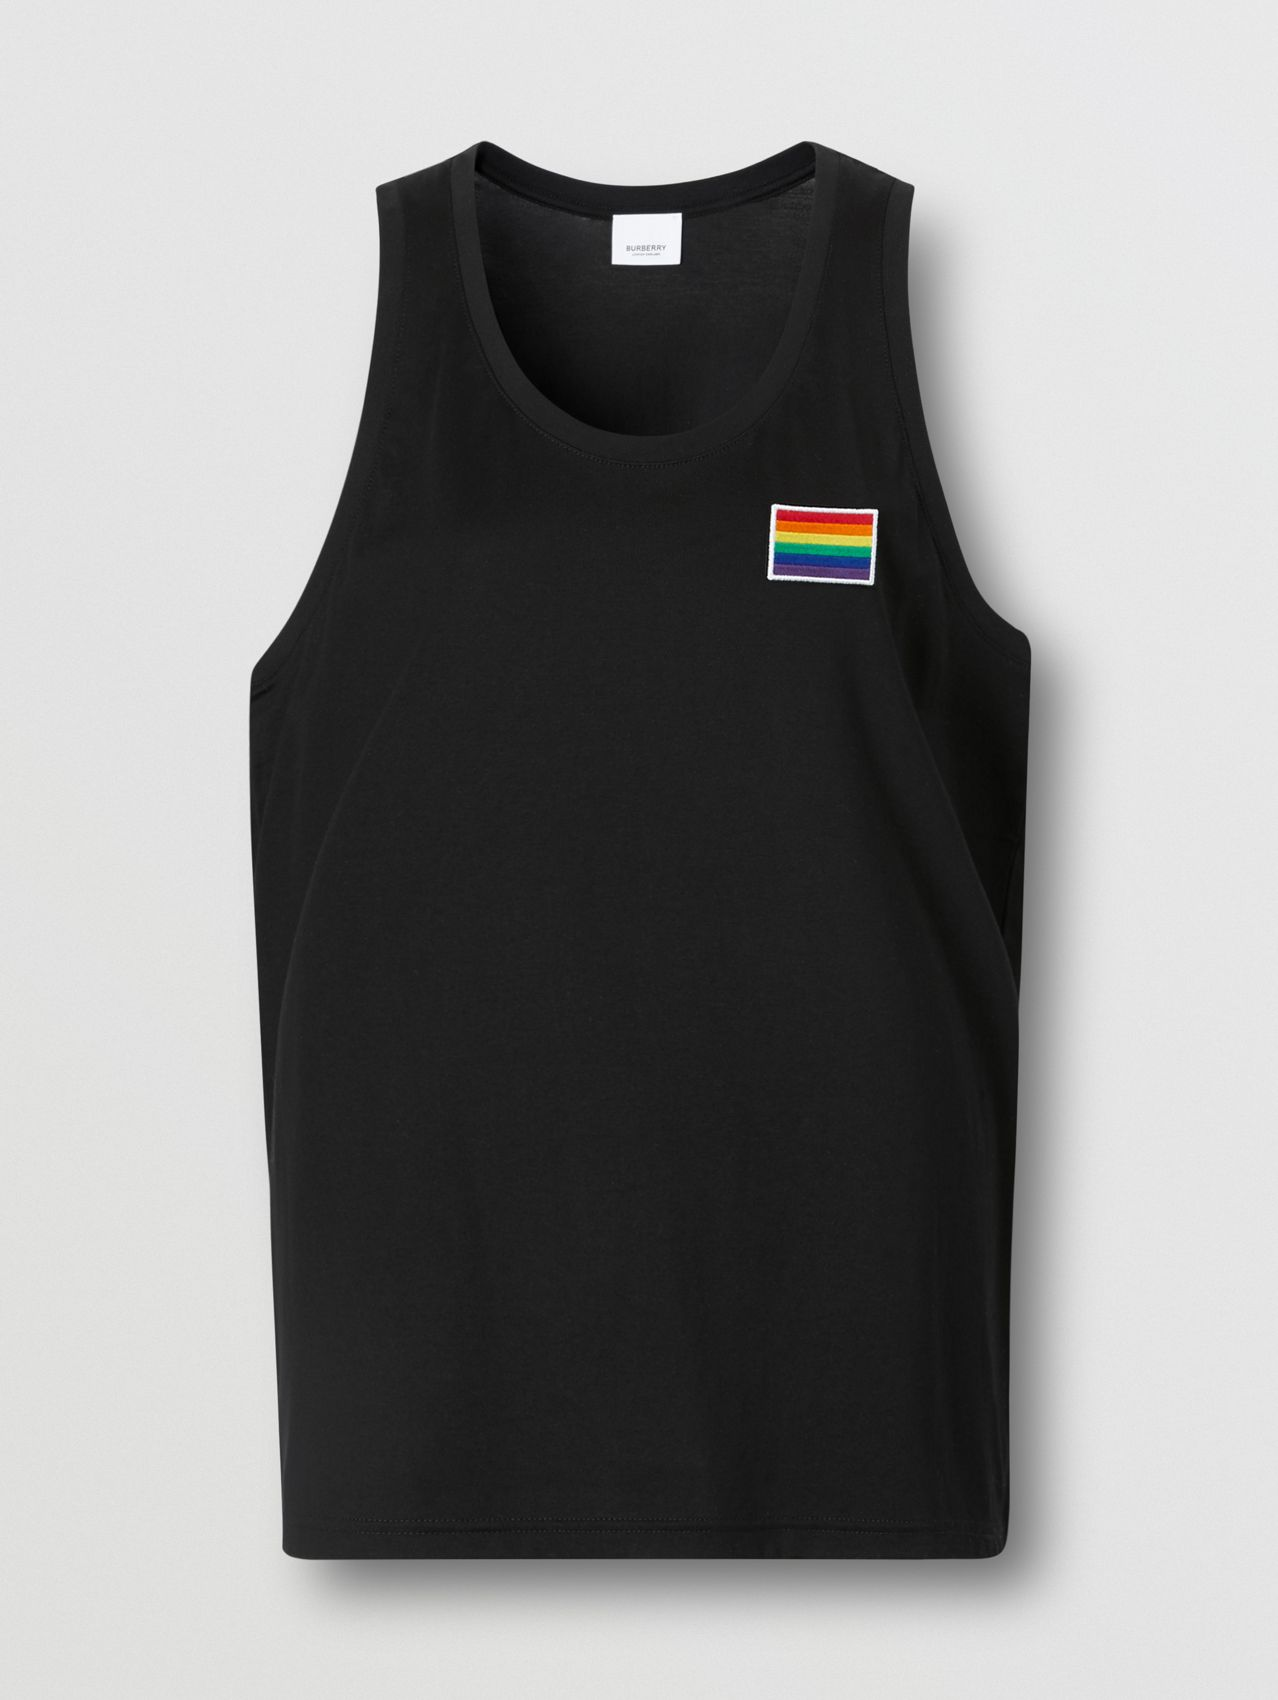 Rainbow Appliqué Cotton Vest – Unisex (Black)